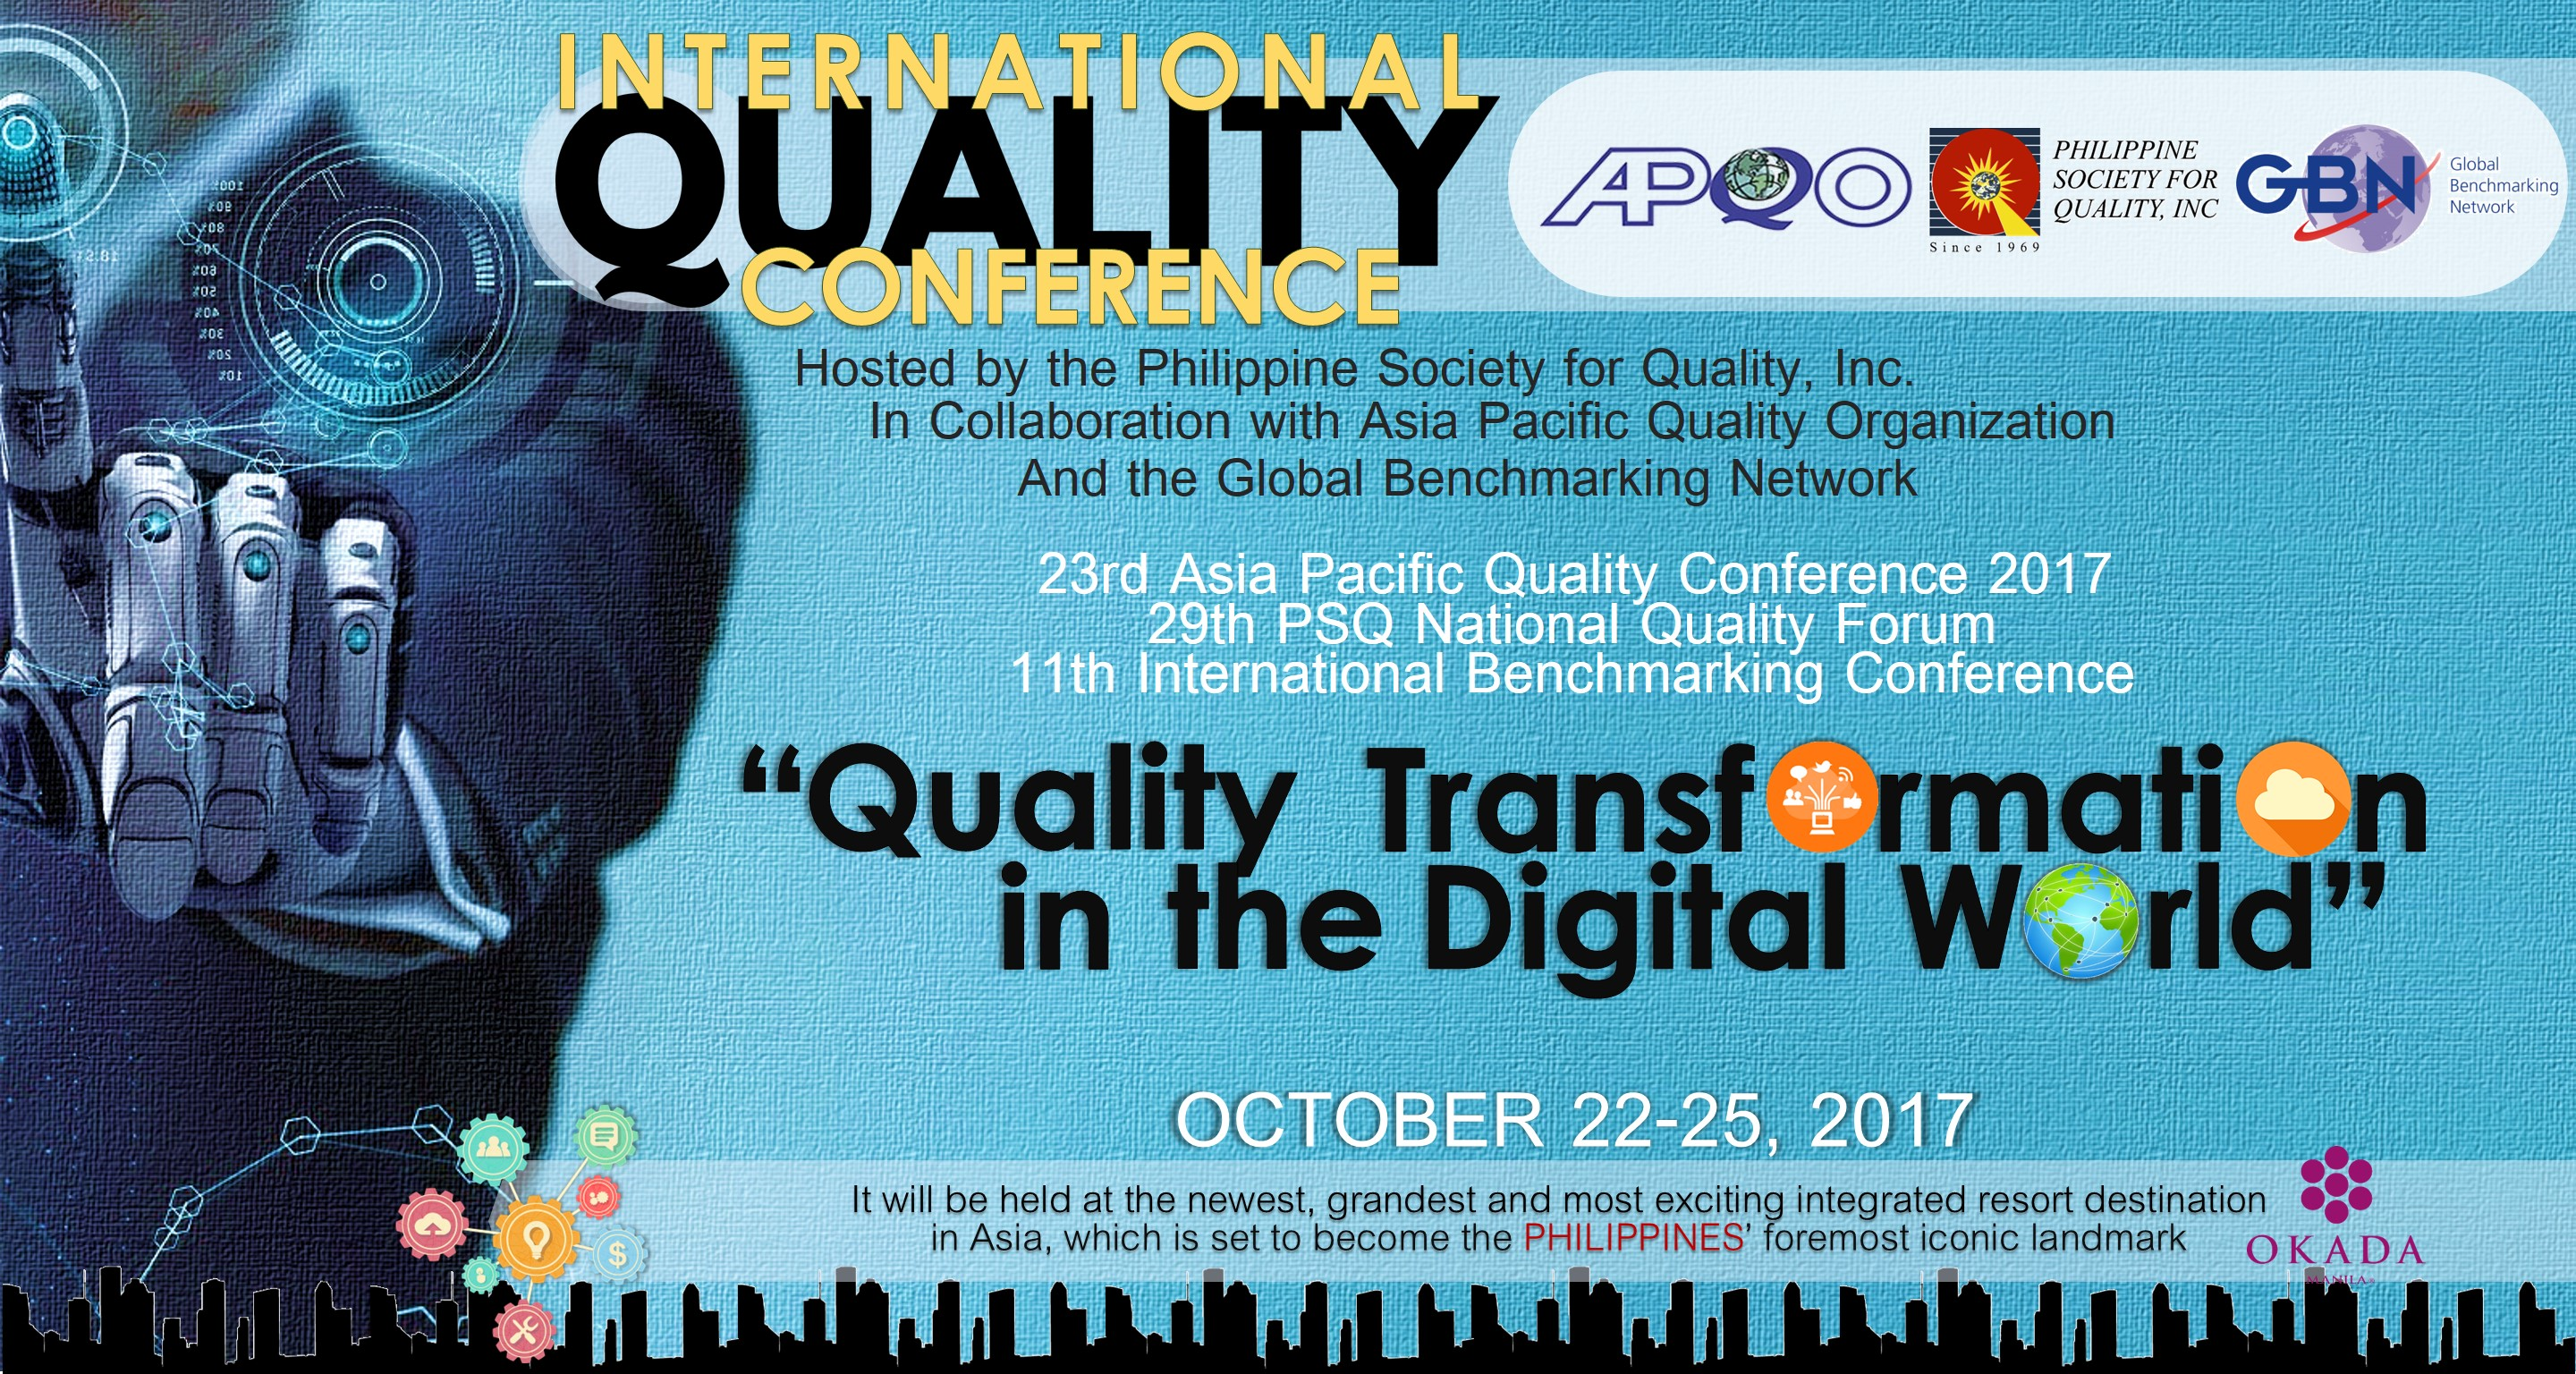 http://www.iqualityconference.com